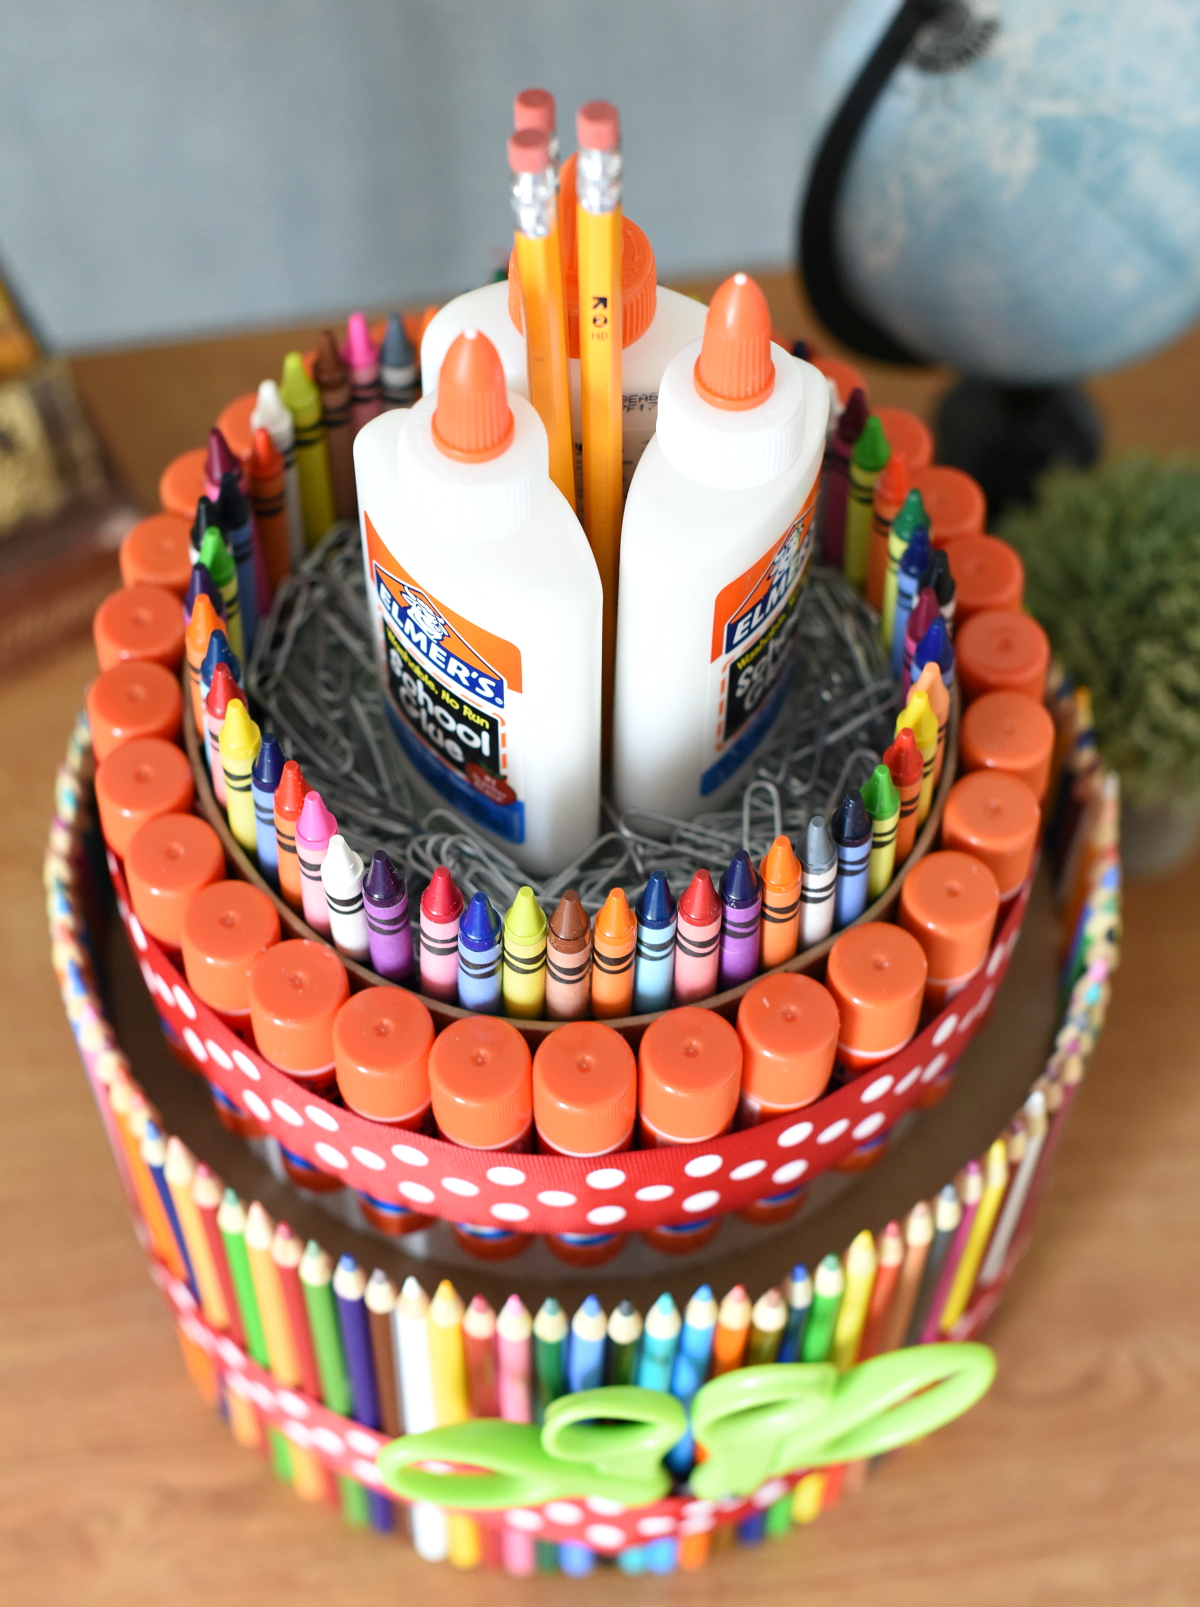 How to make a school supply cake